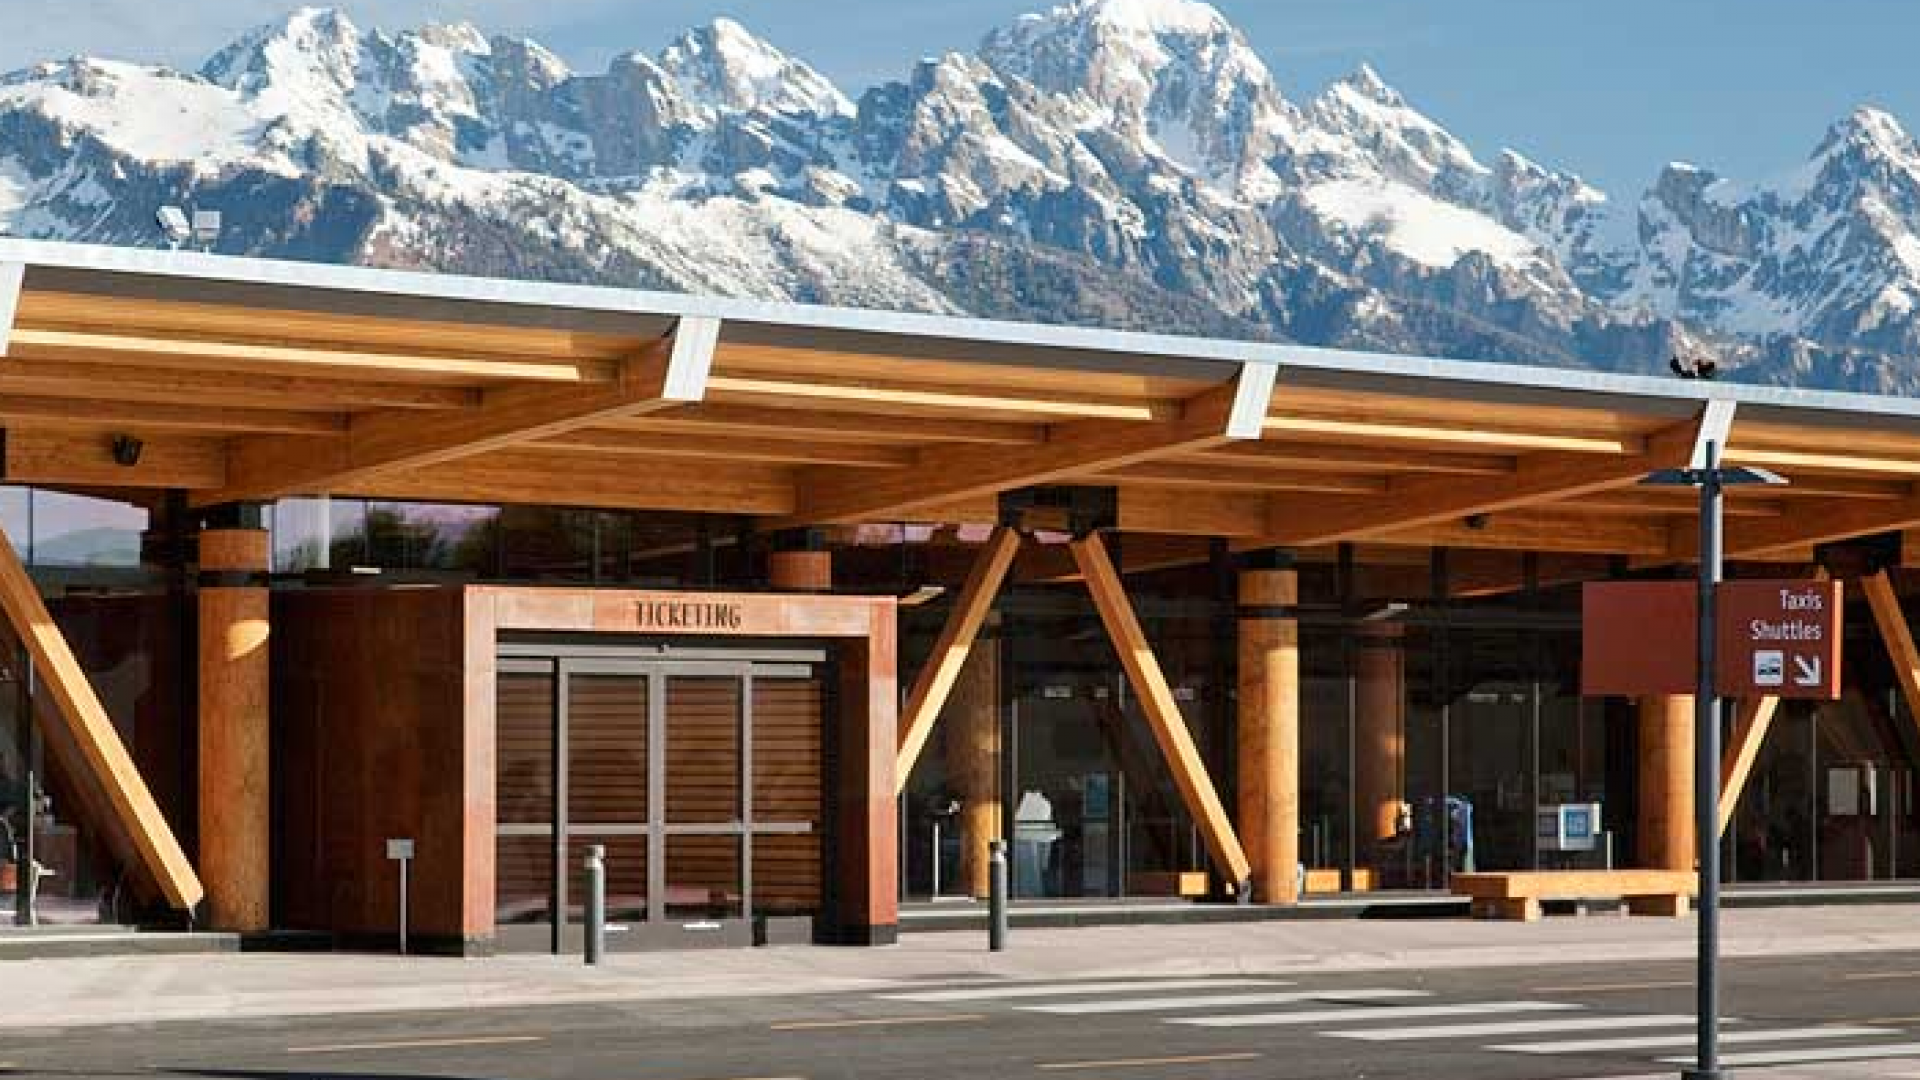 Plan your entire Jackson Hole vacation with one easy phone call, 888-838-6606.